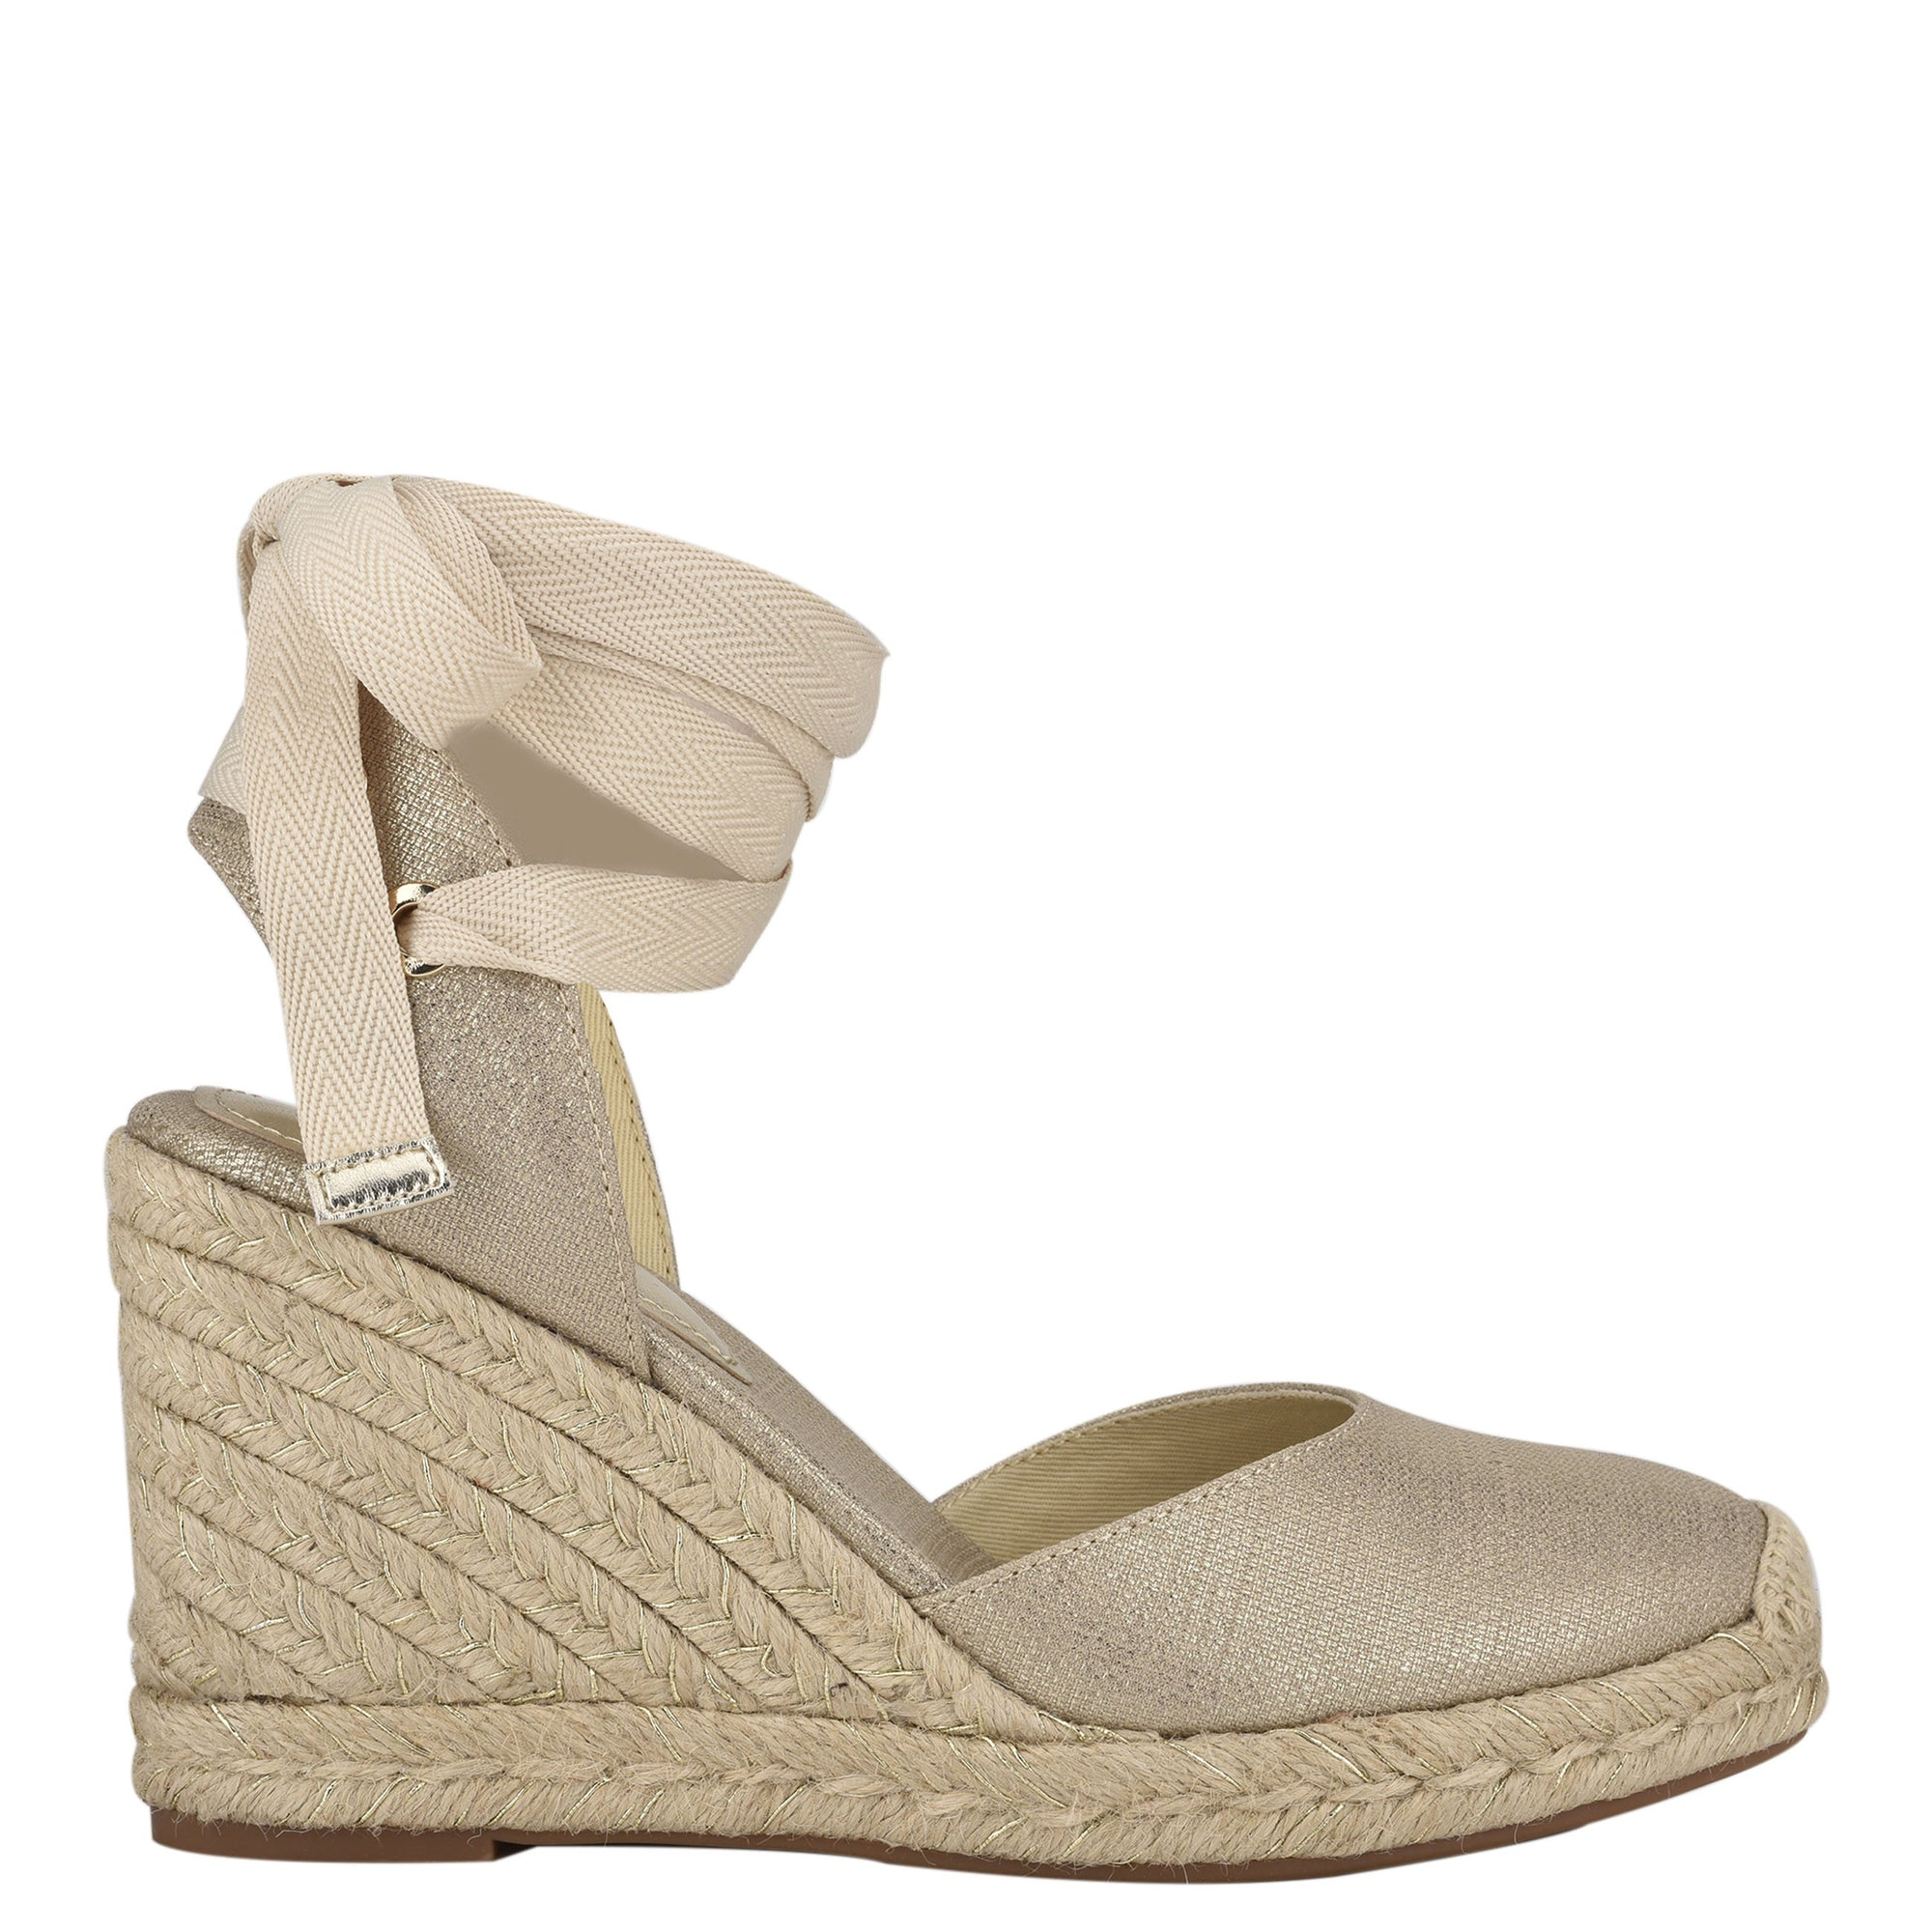 Friend Ankle Wrap Espadrille Wedge Sandals